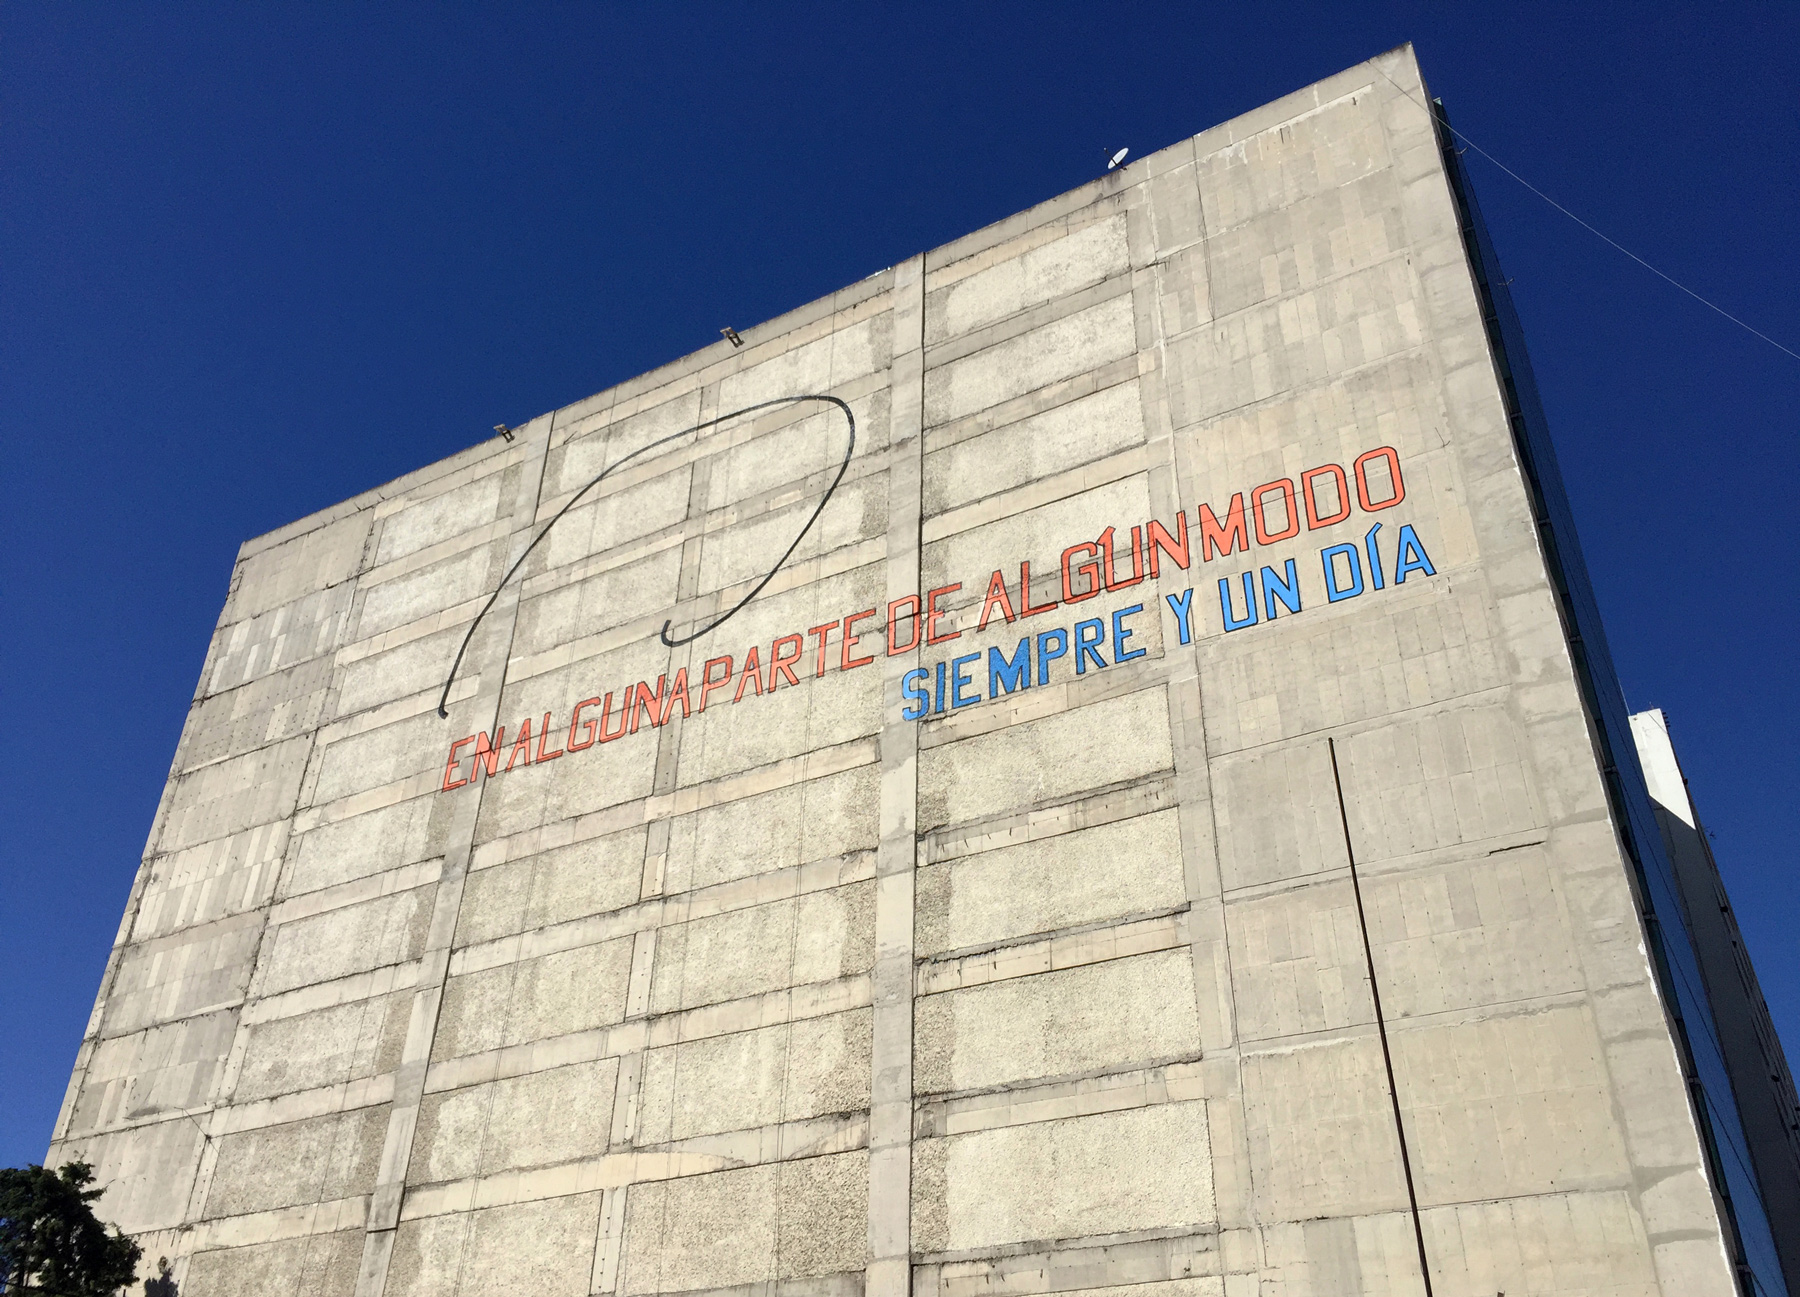 Large scale mural art by Lawrence Weiner in Mexico City